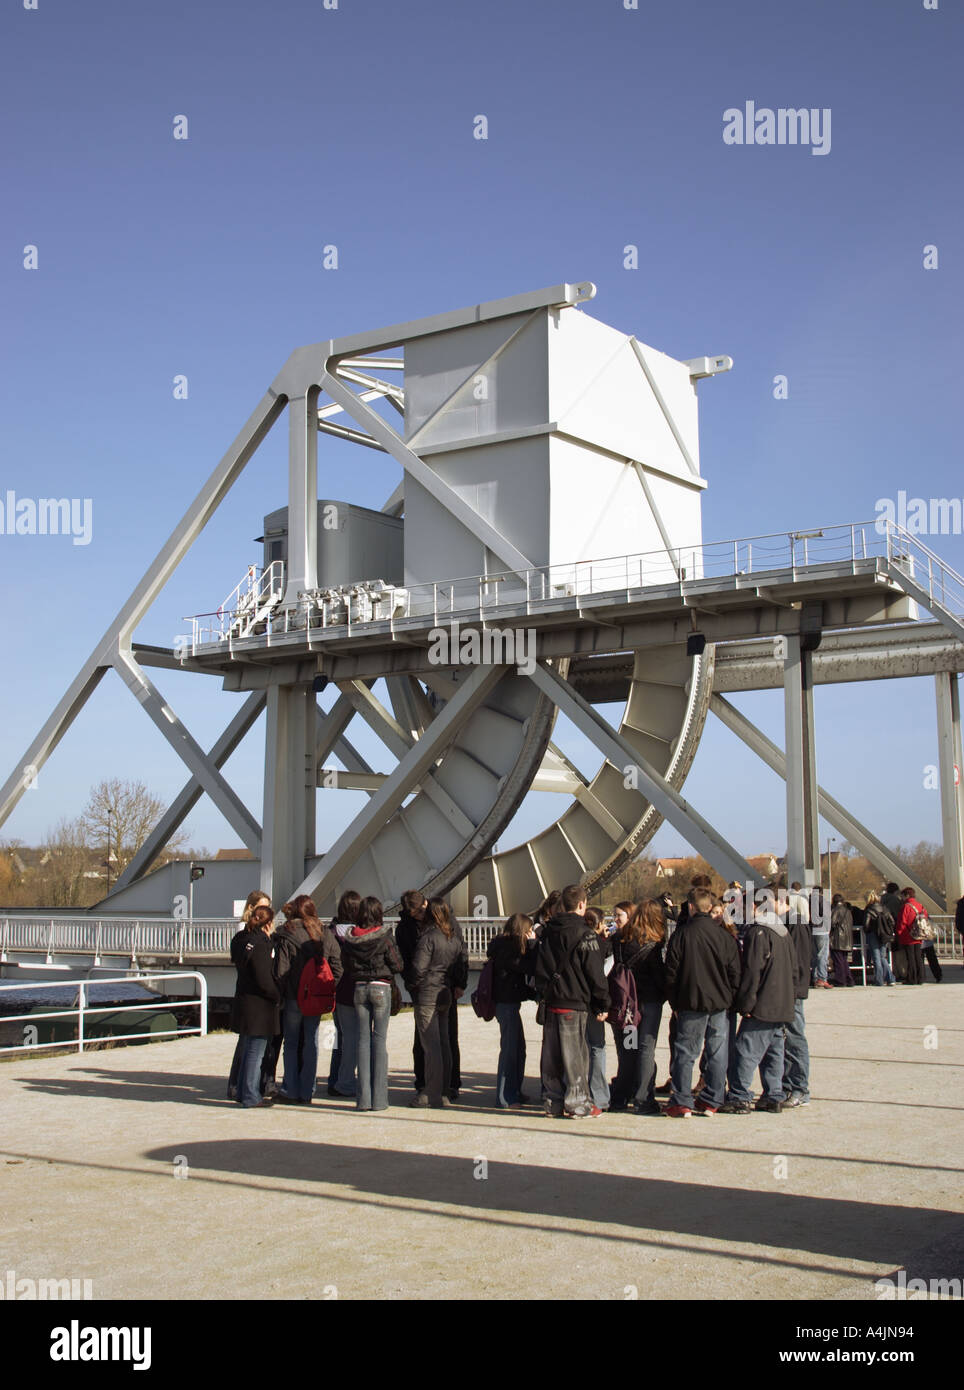 School visit to Pegasus Bridge the World War II battle site at Benouville, Normandy France - Stock Image